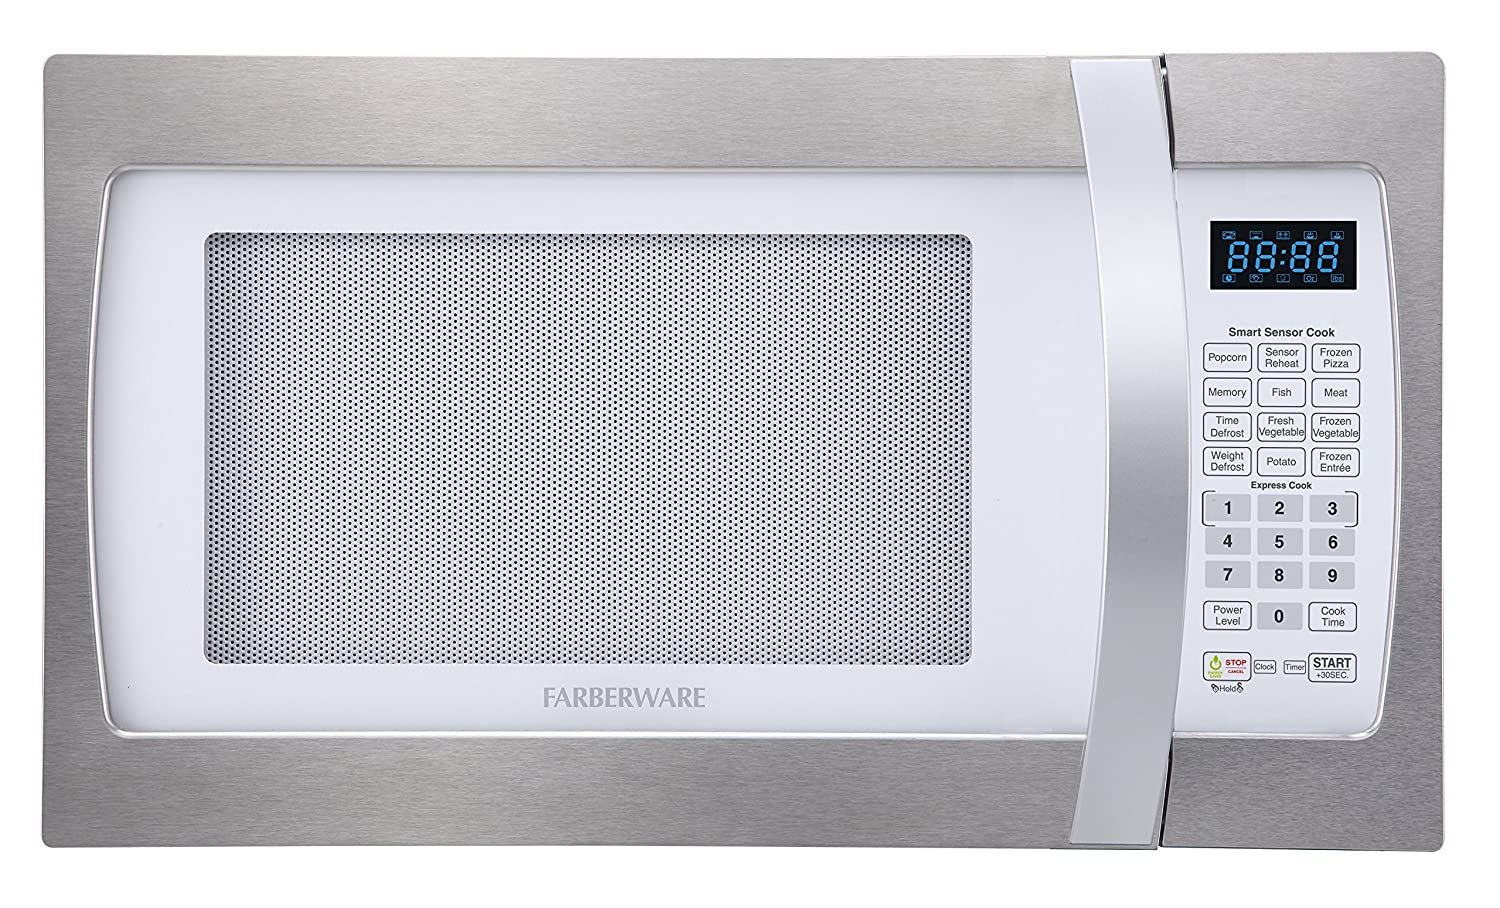 Farberware Professional FMO13AHTPLE 1.3 Cu. Ft. 1100-Watt Microwave Oven with Smart Sensor Cooking, ECO Mode and LED Lighting, White and Platinum